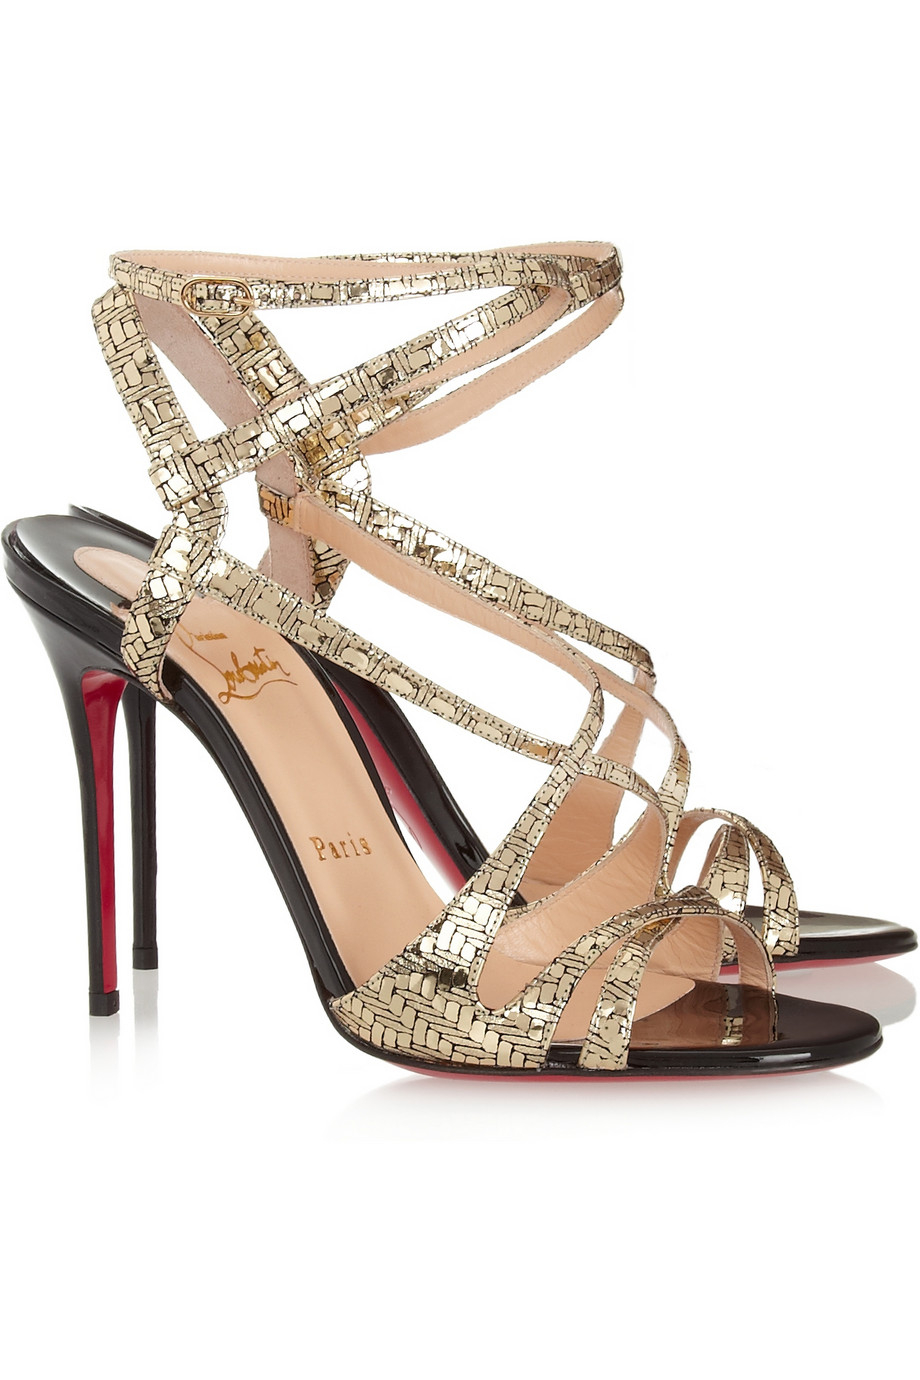 fake christian louboutins online - christian louboutin glitter sandals Metallic gold crossover straps ...